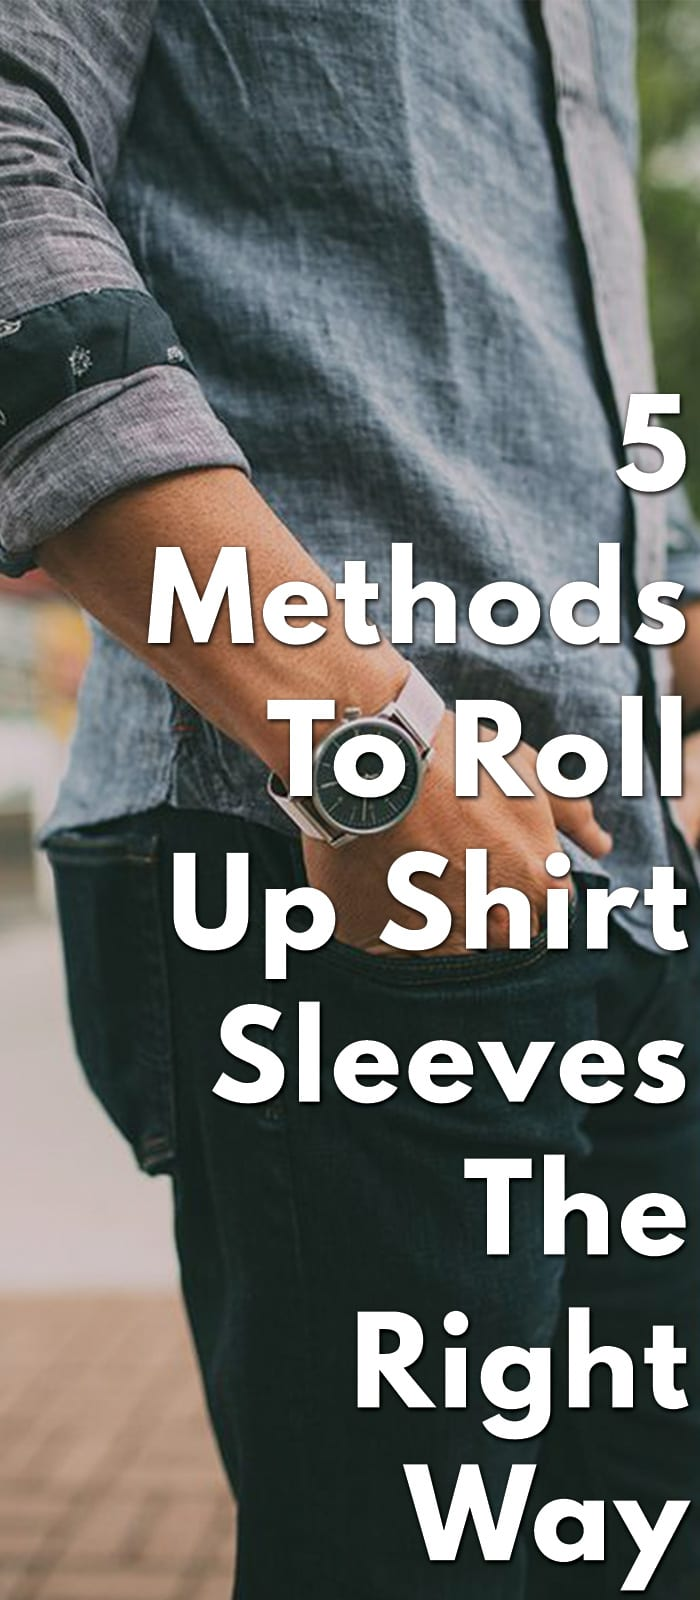 5-Methods-To-Roll-Up-Shirt-Sleeves-The-Right-Way